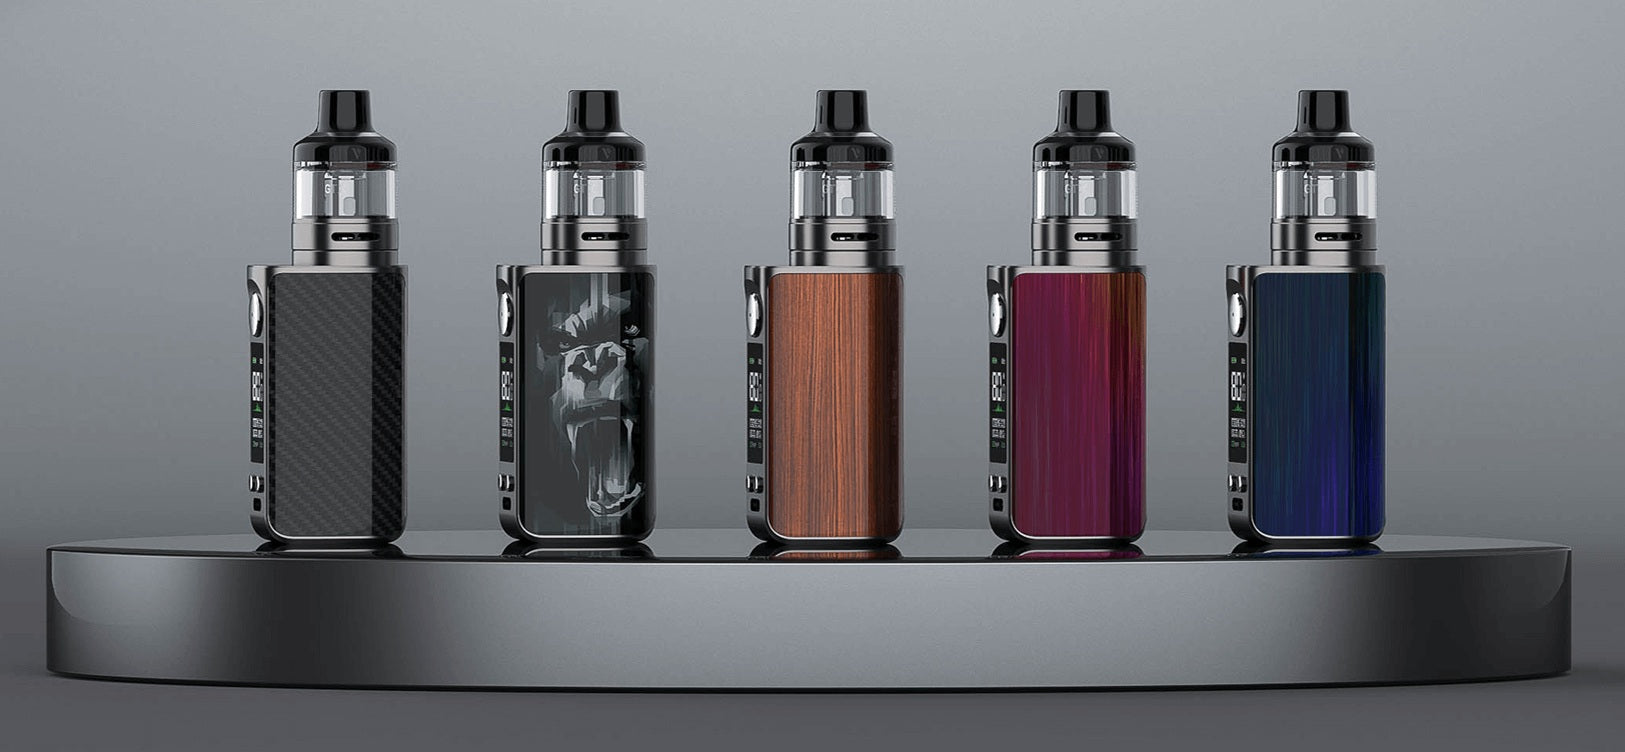 Luxe 80 is available in five colours